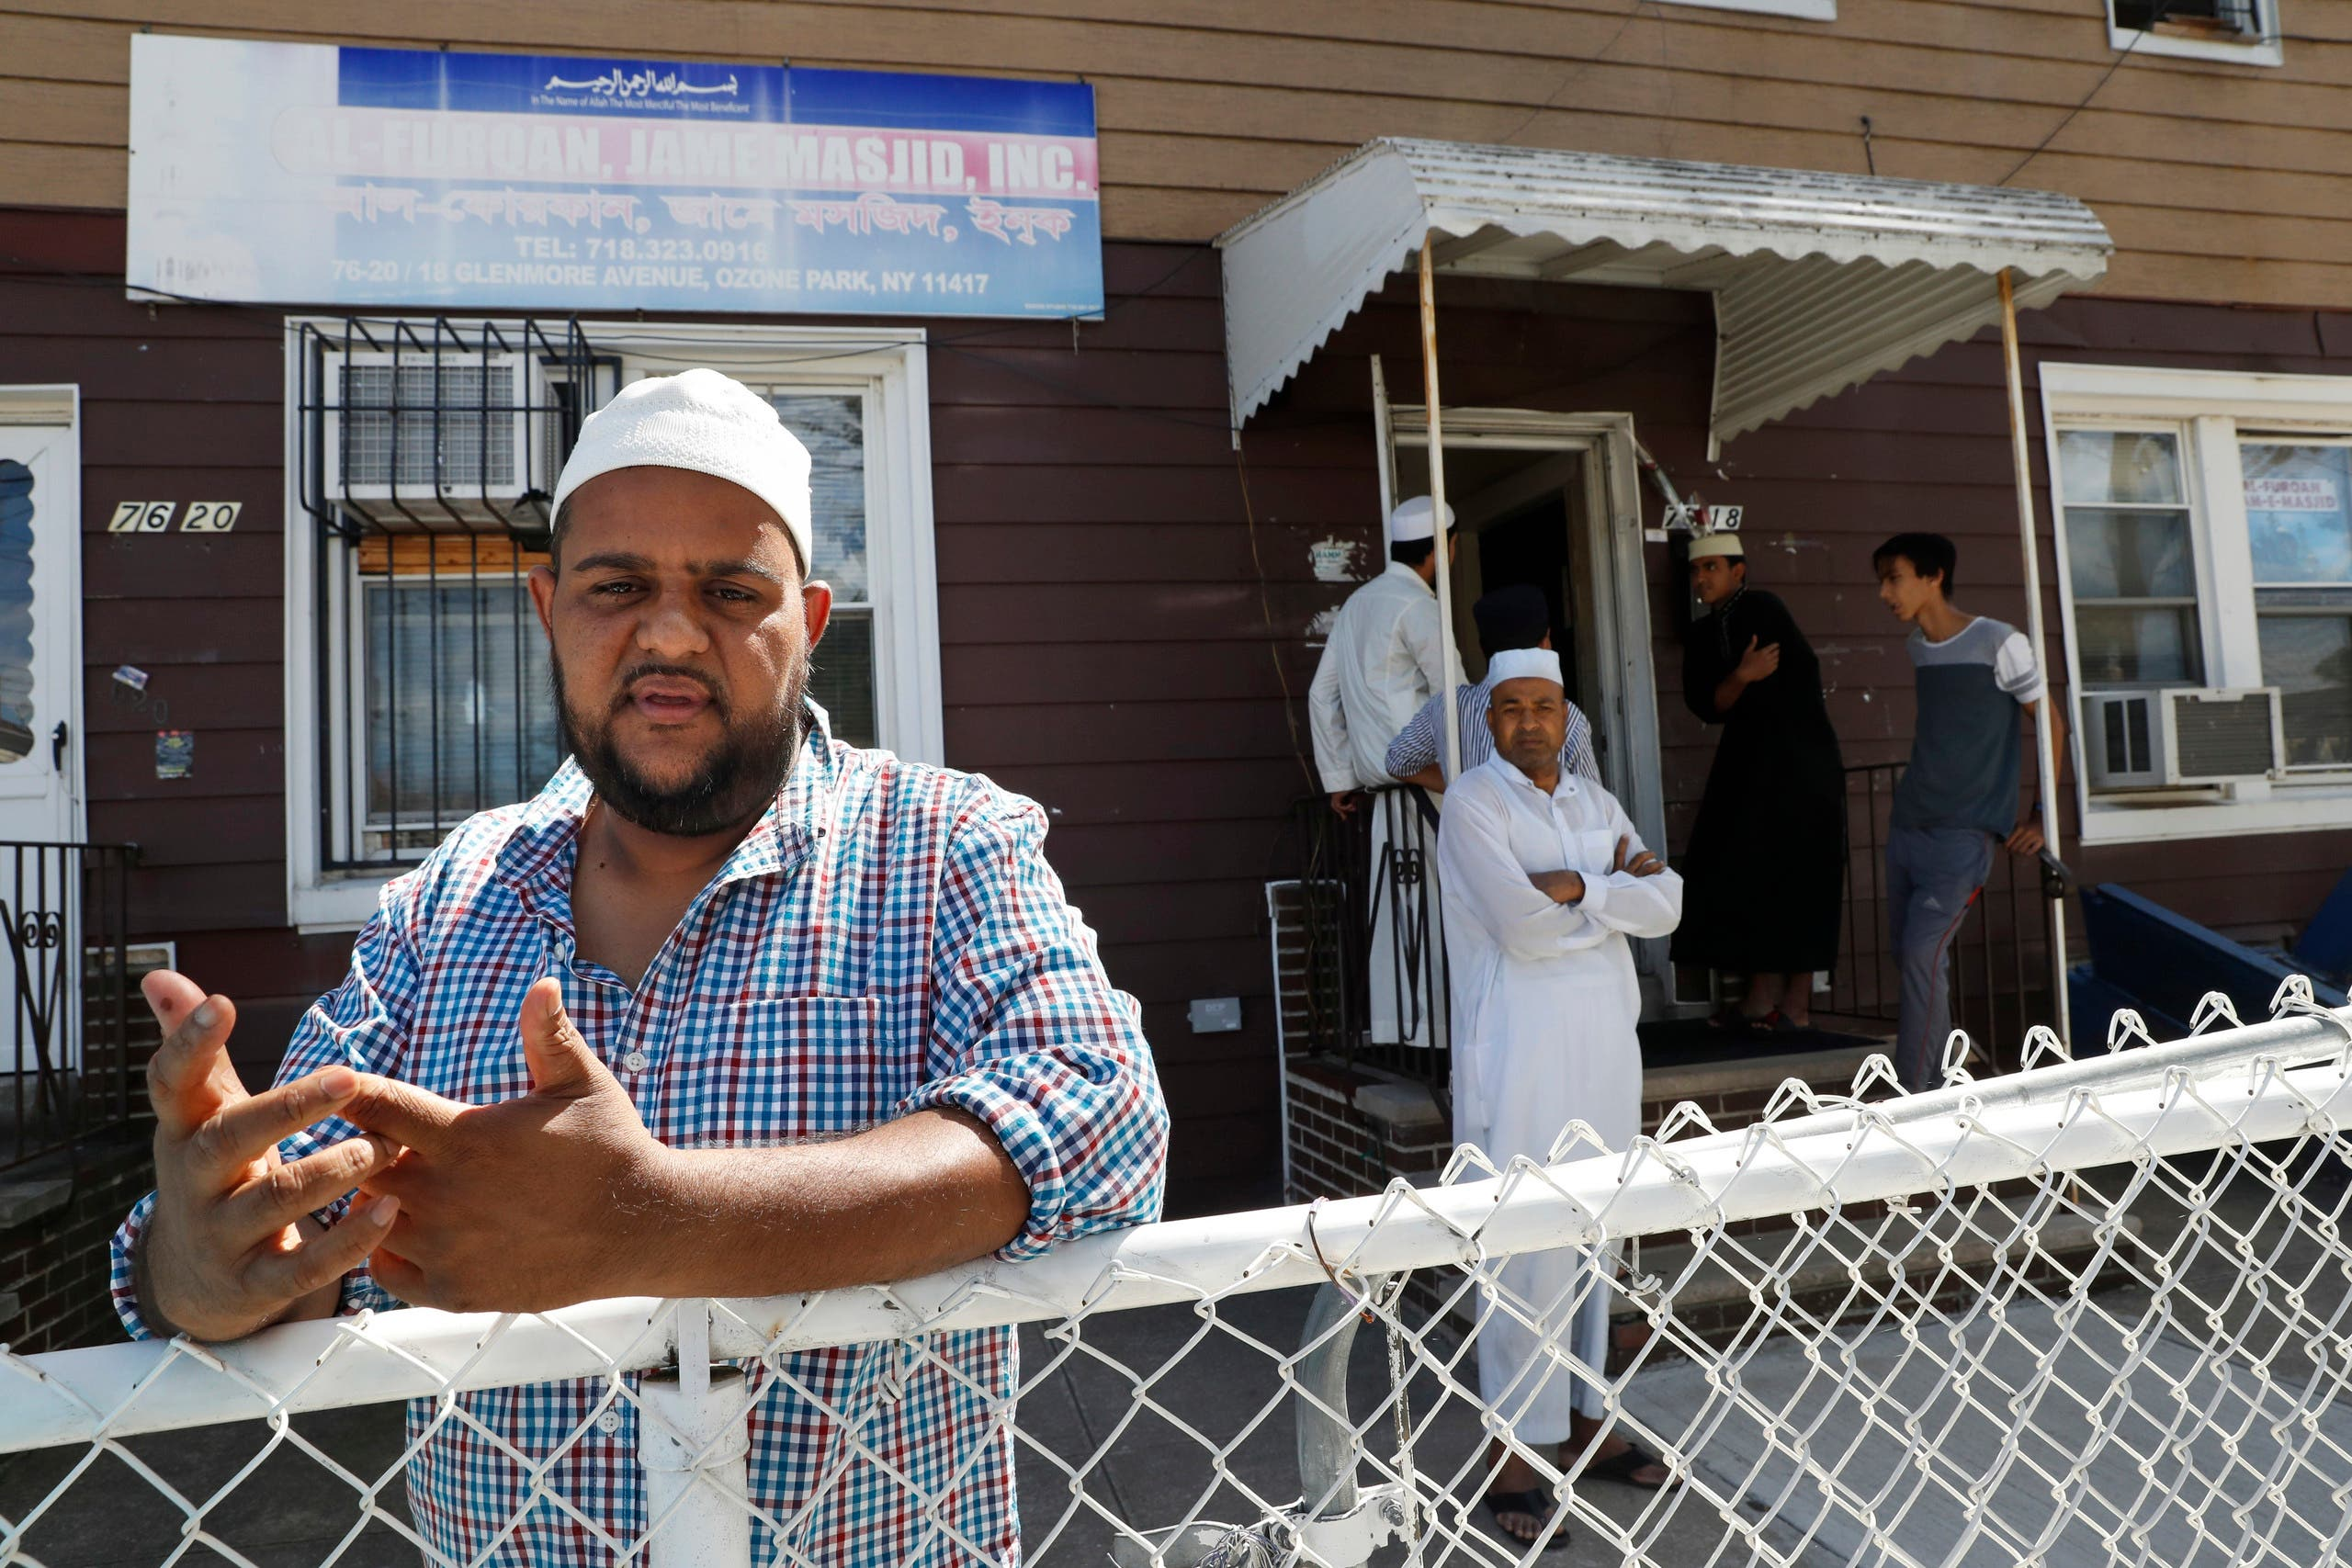 In this Wednesday, Aug. 17, 2016, photo Nurul Hoque gestures as he speaks during an interview with The Associated Press outside the Al-Furqan Jame mosque in the Ozone Park neighborhood of the Queens borough of New York. The shooting of an imam and his assistant near their New York mosque has unnerved Muslim residents of the Ozone Park section of Queens. (AP)